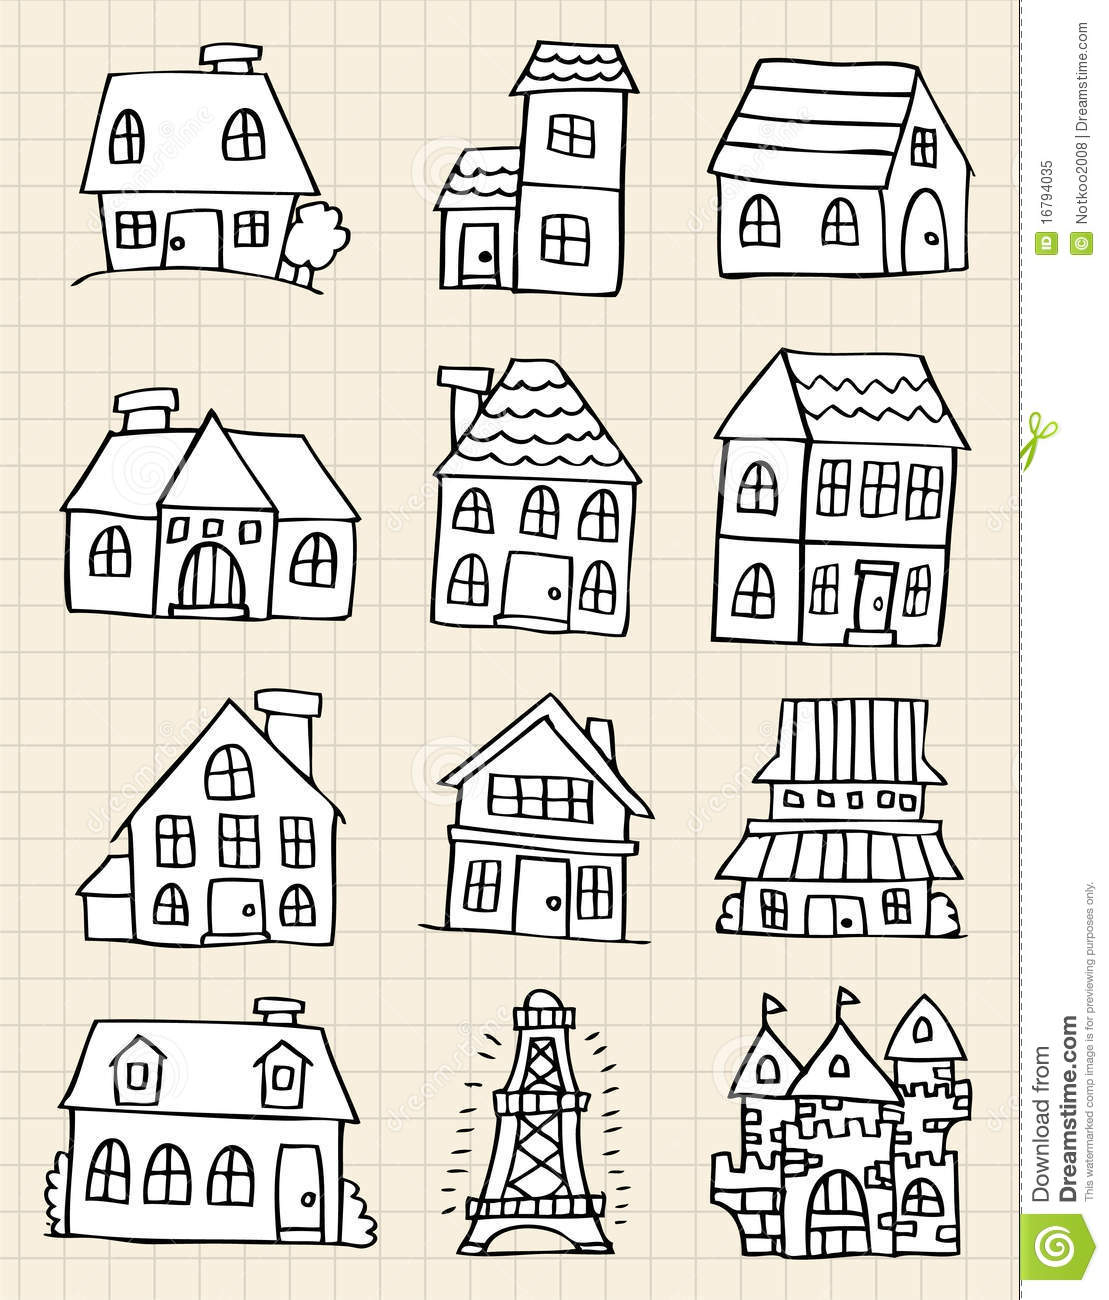 Cute house draw royalty free stock photo image 16794035 for Draw house online